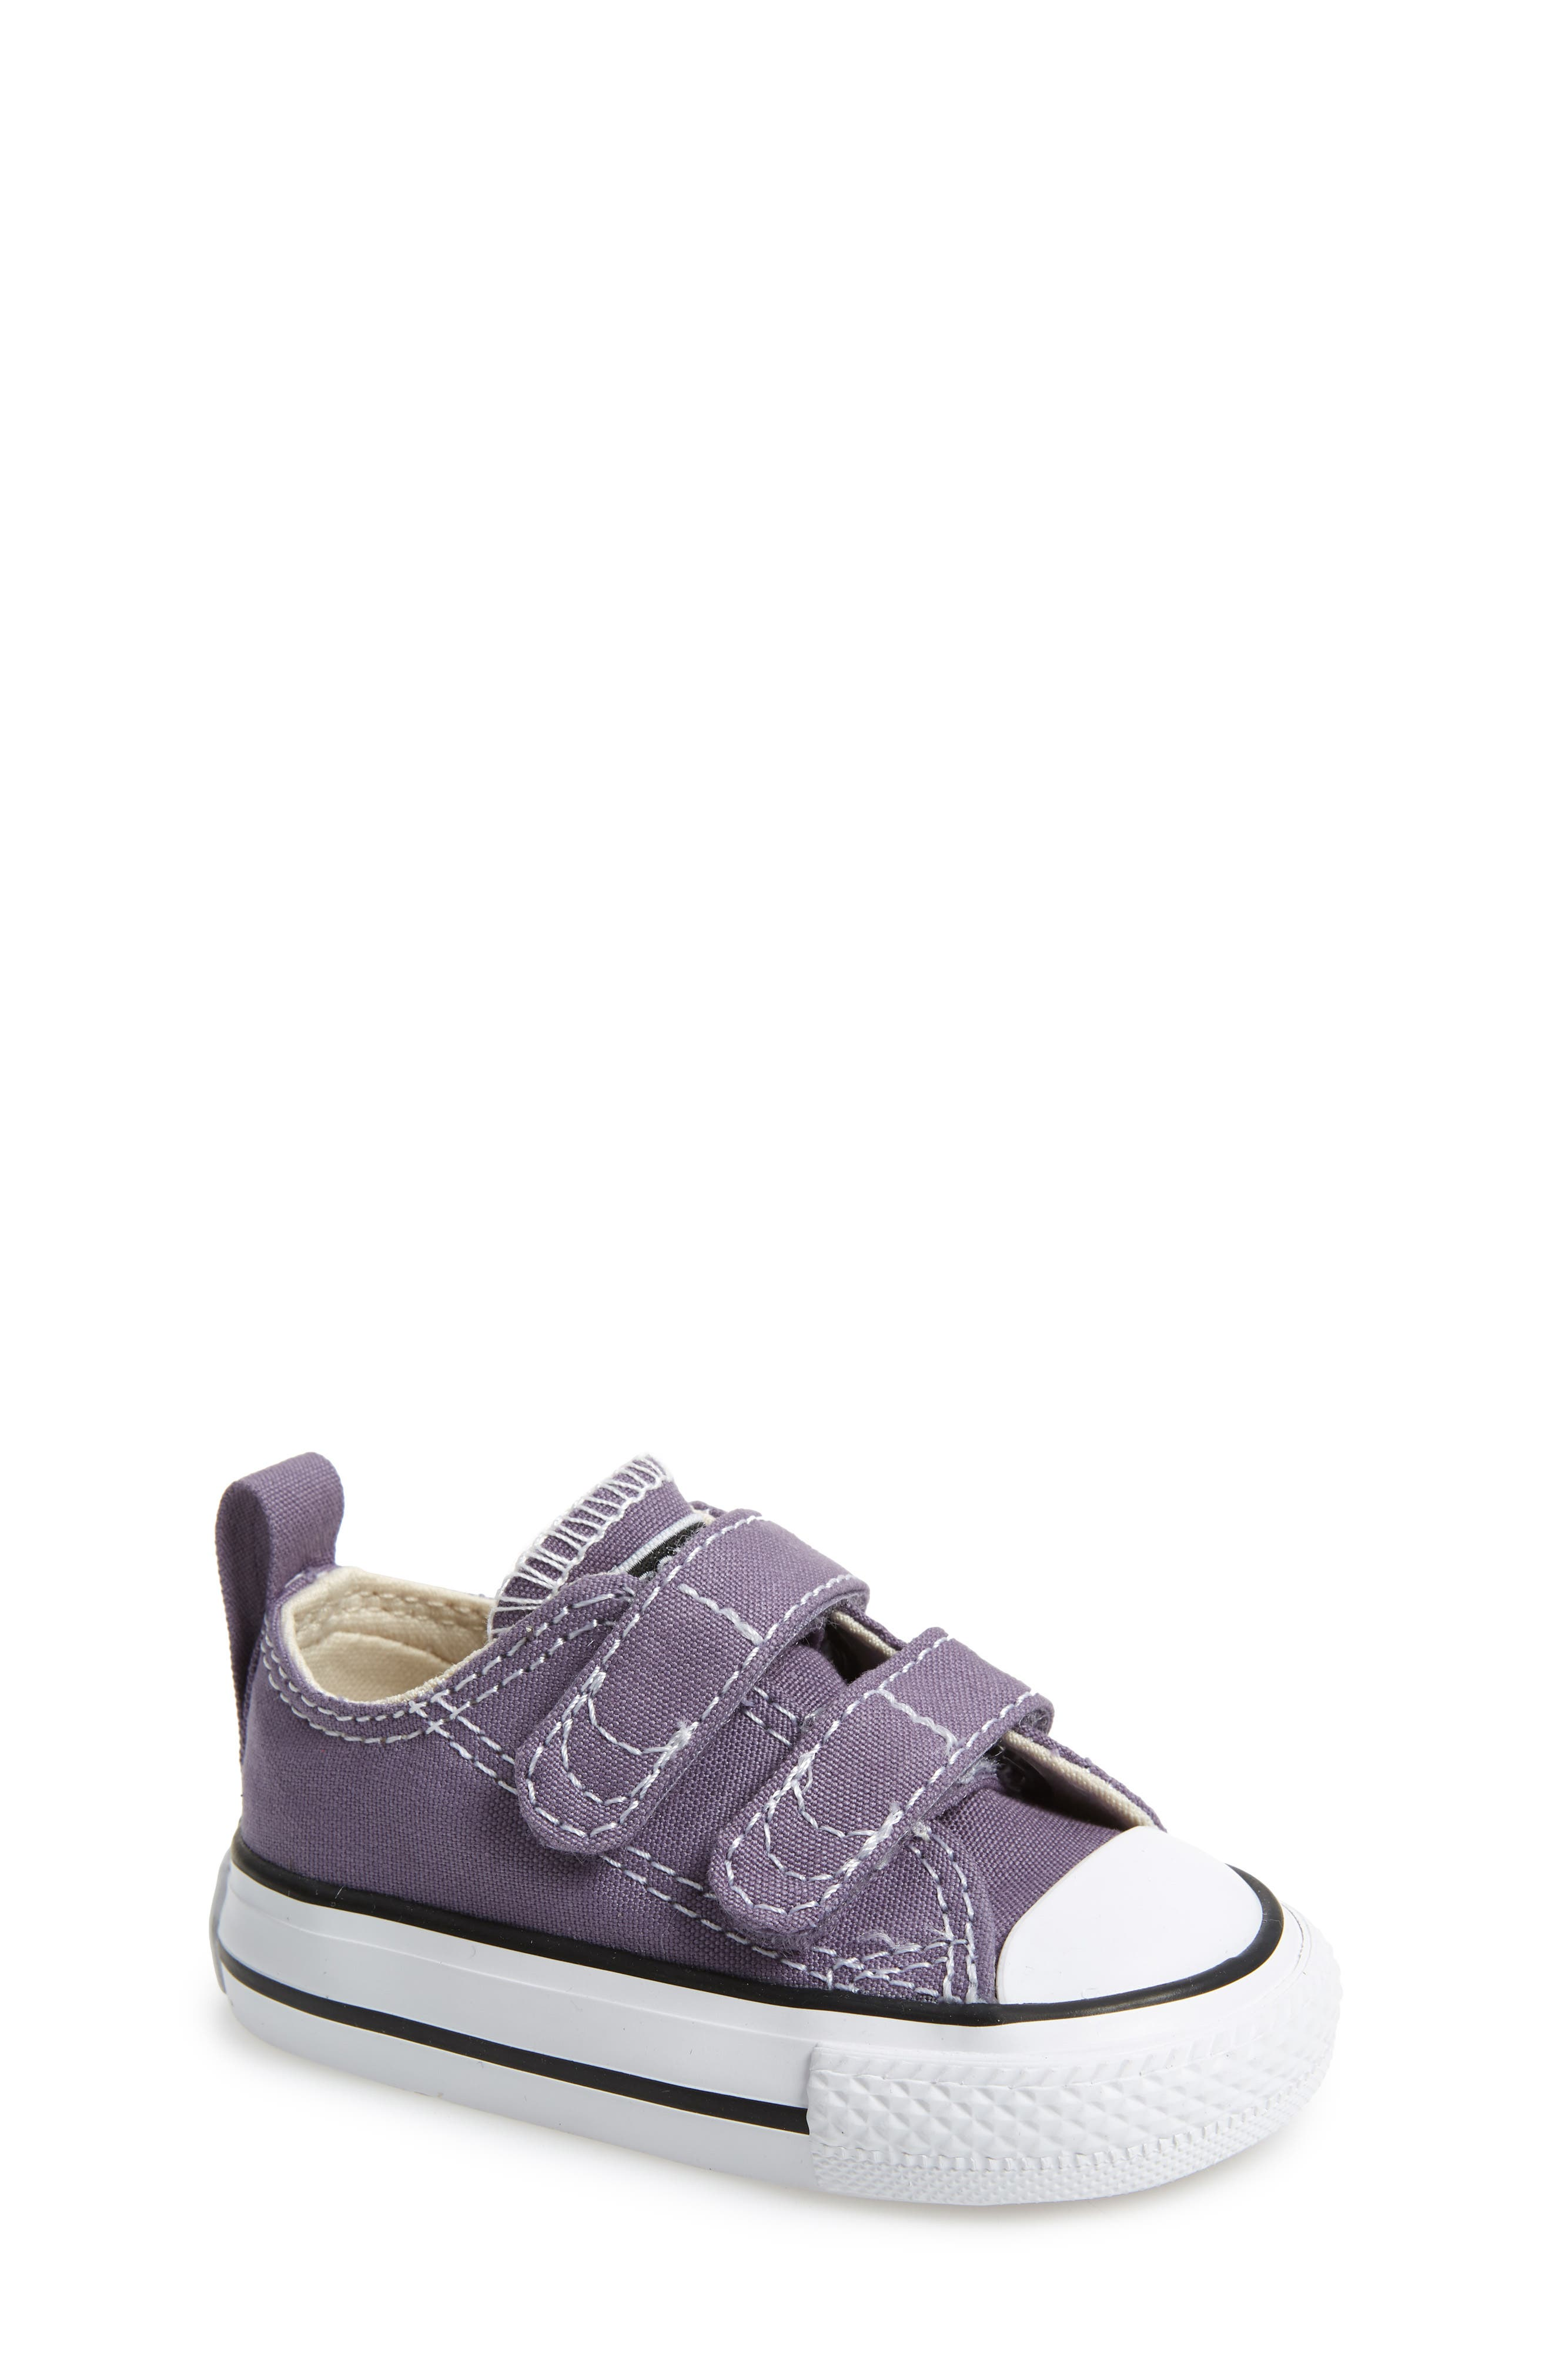 Chuck Taylor<sup>®</sup> 'Double Strap' Sneaker,                             Main thumbnail 1, color,                             MOODY PURPLE/ NATURAL IVORY